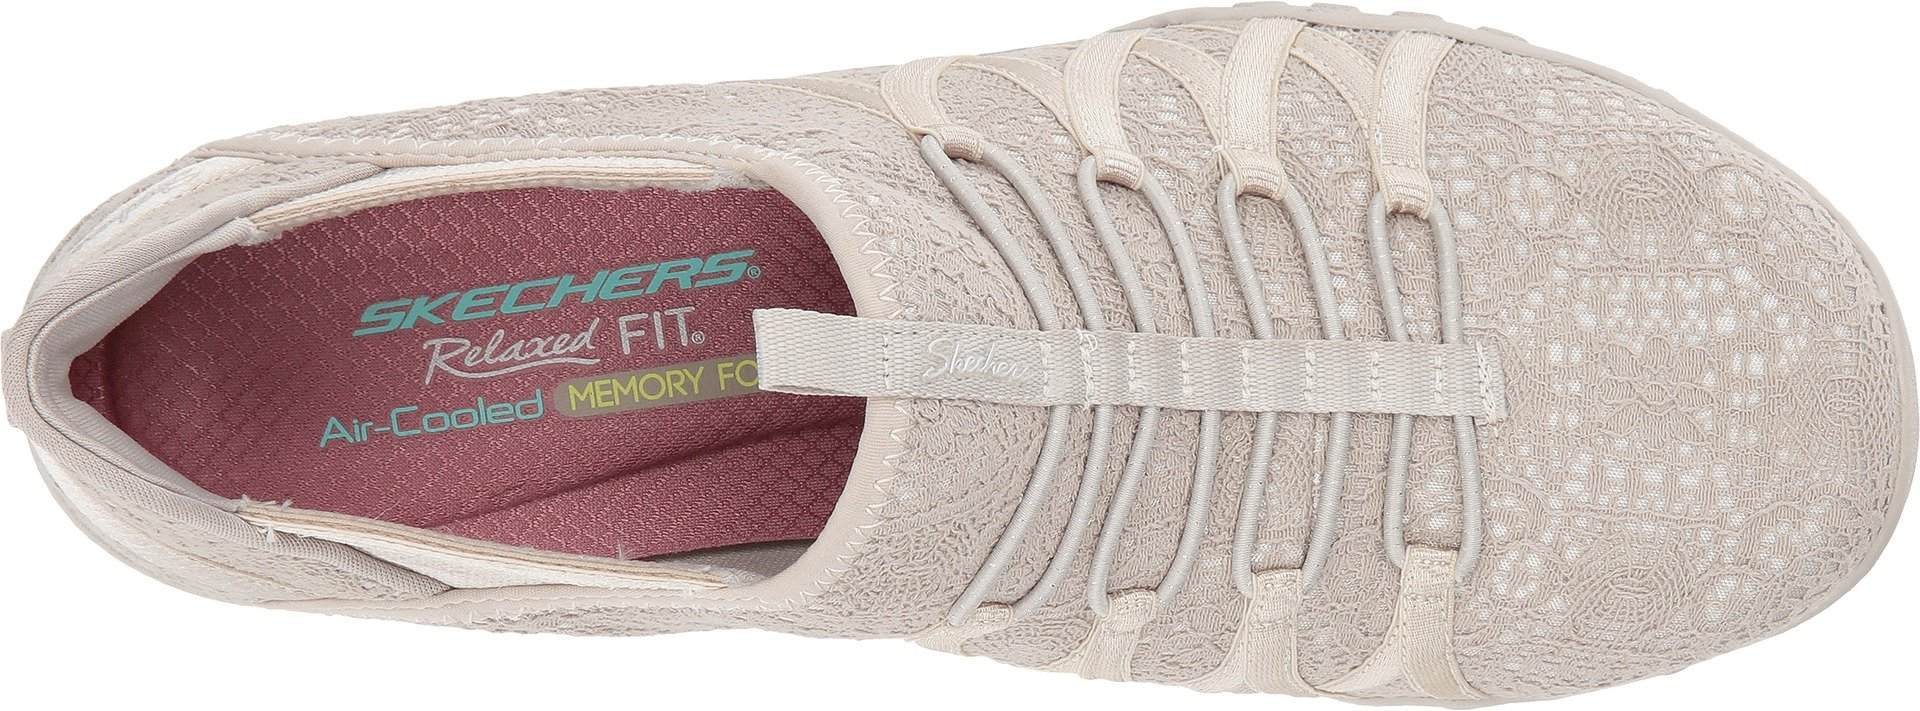 Skechers Relaxed Fit Breathe Easy Harmonia Womens Slip On Bungee Sneakers Natural 5.5 by Skechers (Image #2)